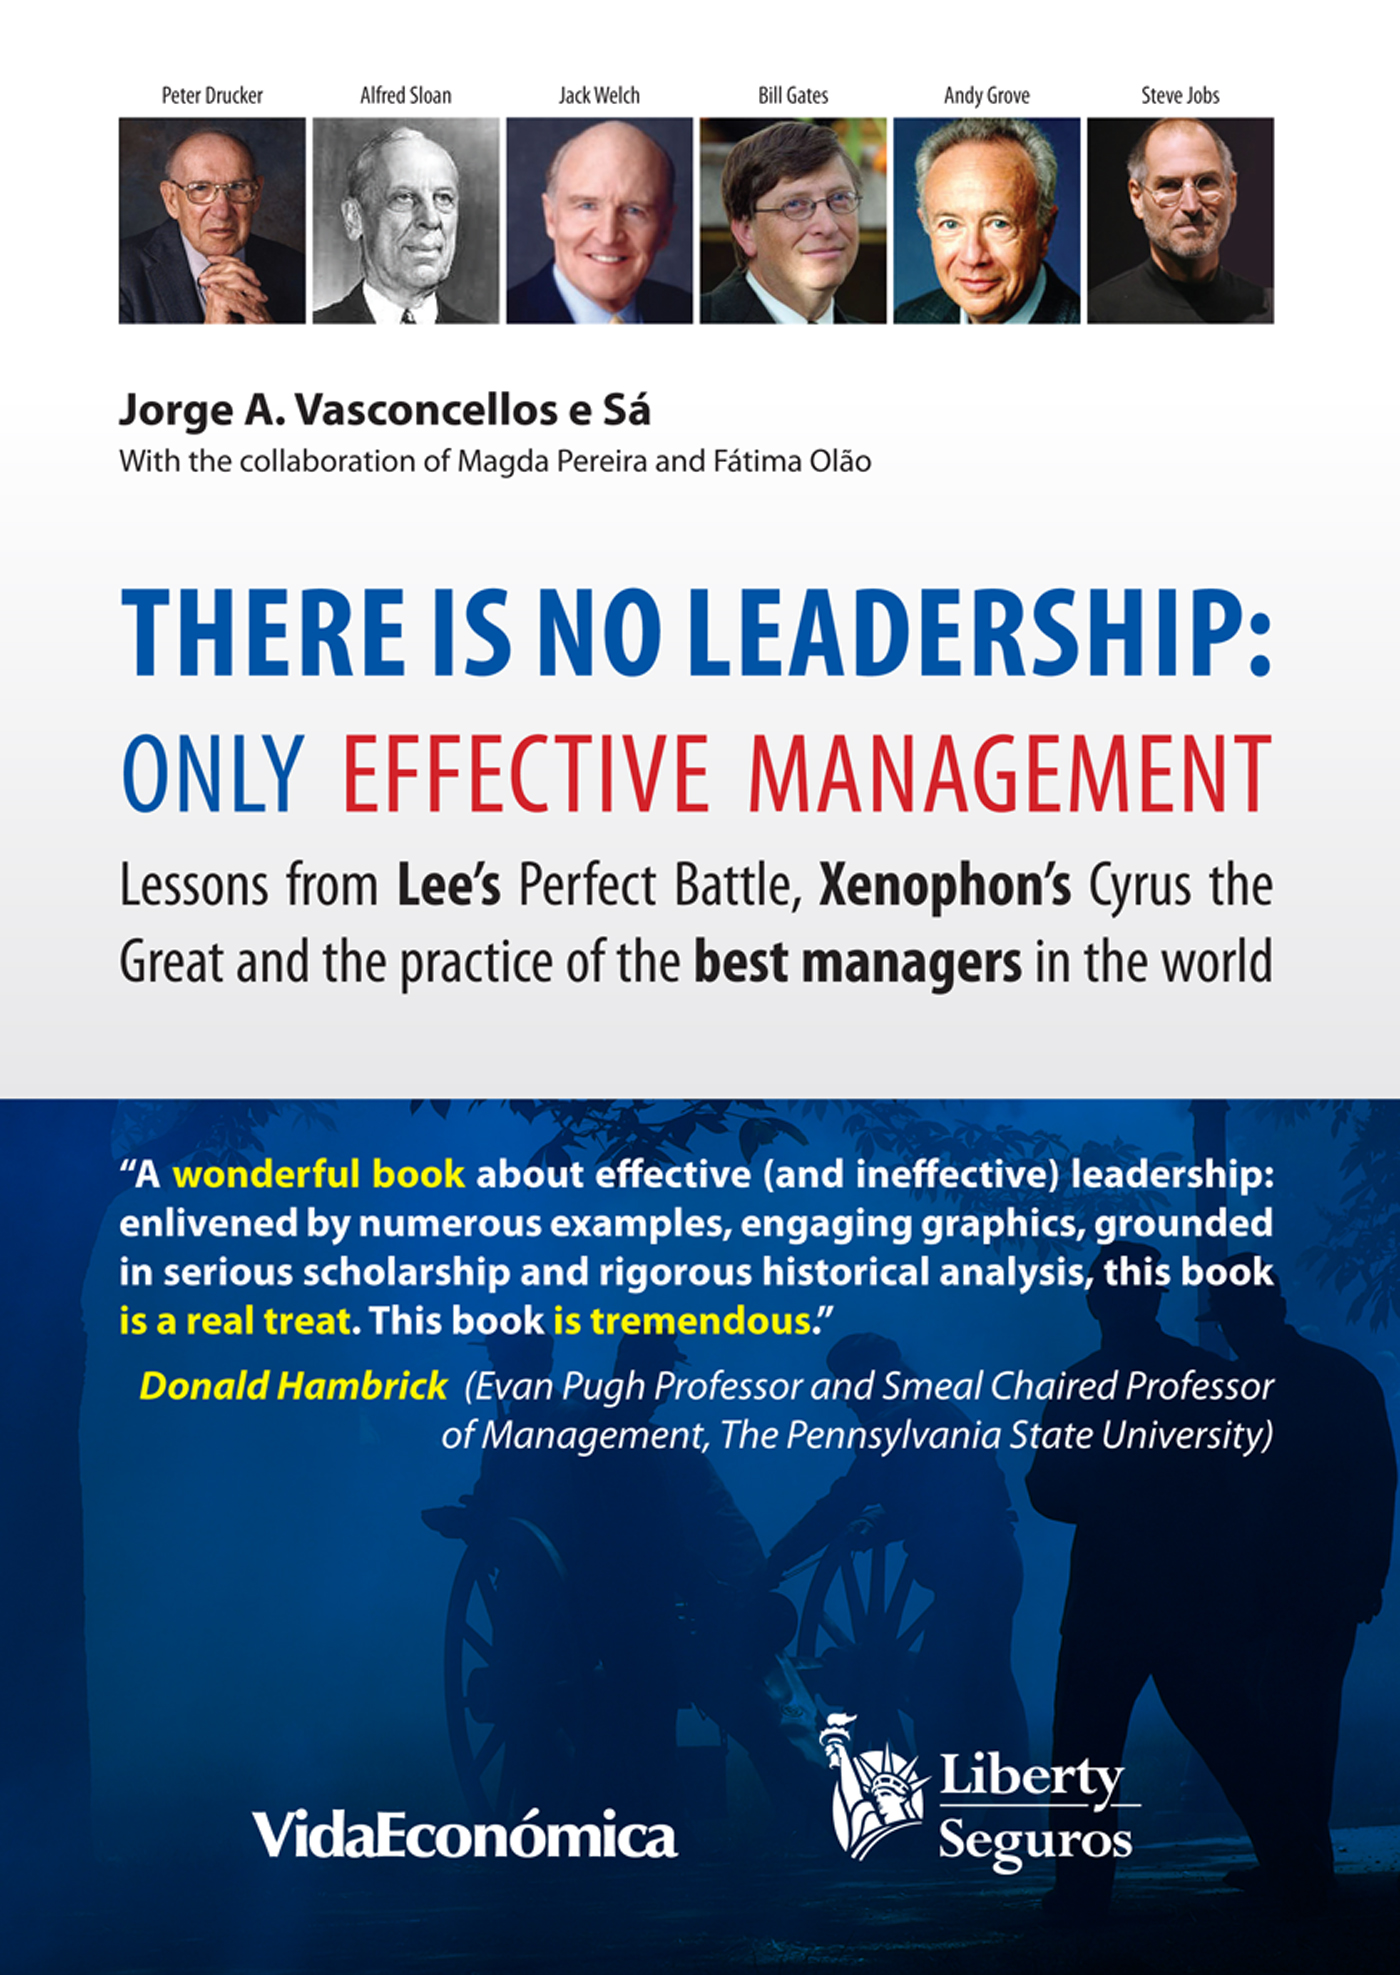 There is no leadership: only effective management